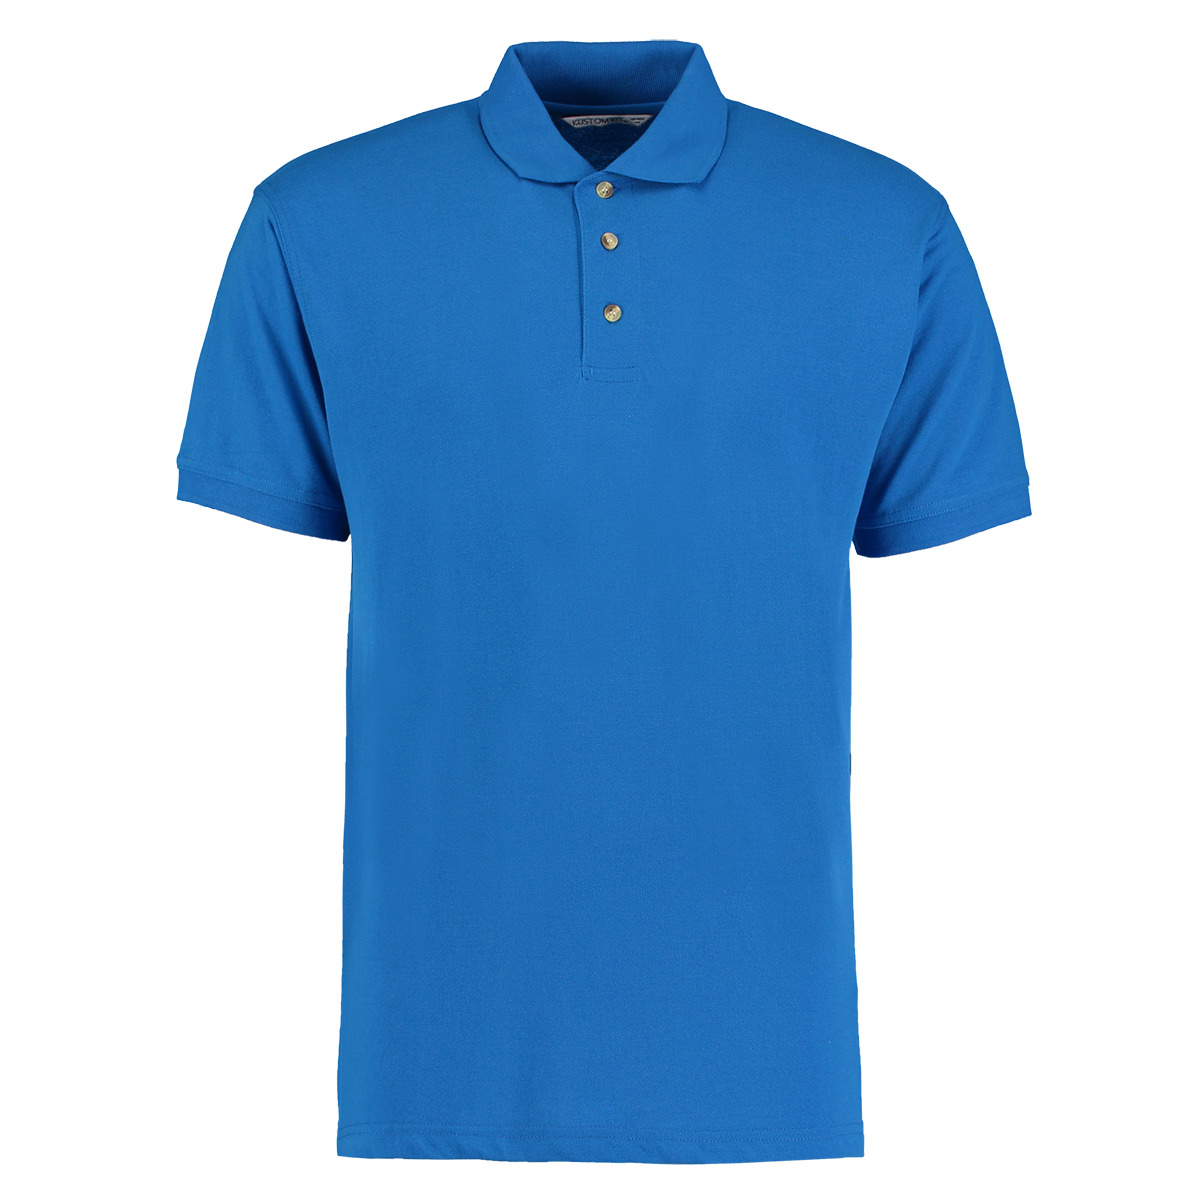 Royal Blue Polo Shirt For Men